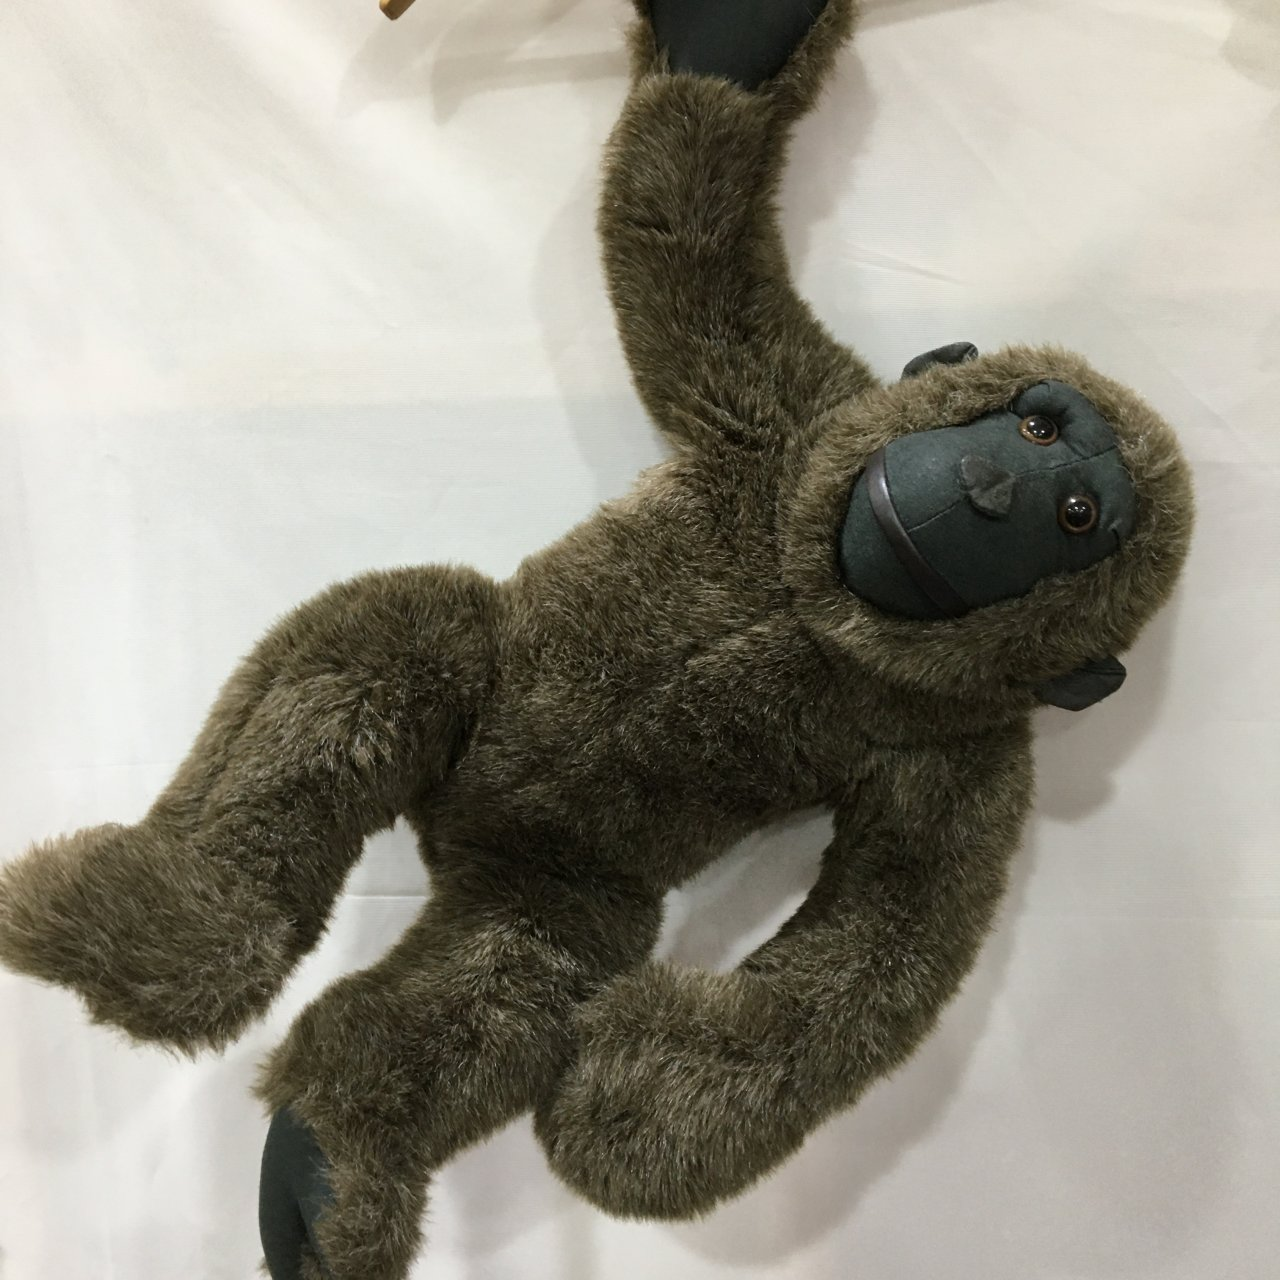 50% Off - Monkey Soft Toy, Brown, No Tag